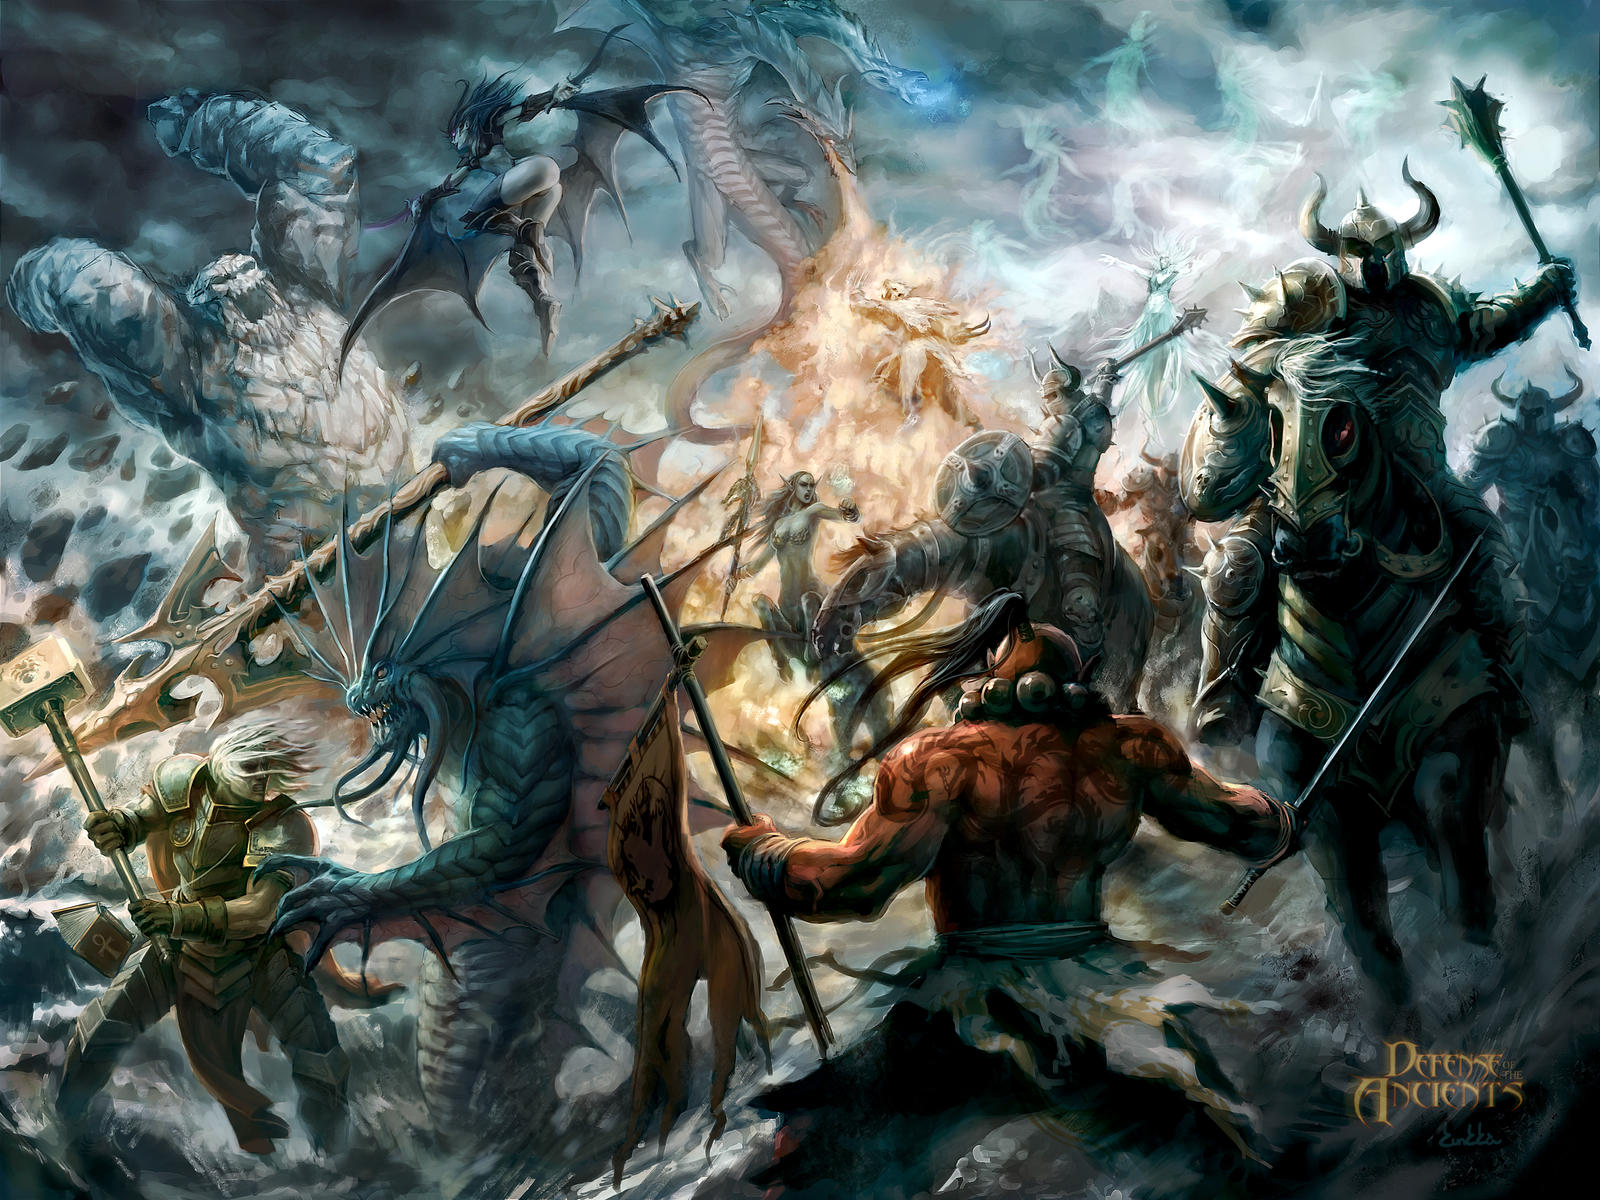 Defense of the Ancients -6.63-